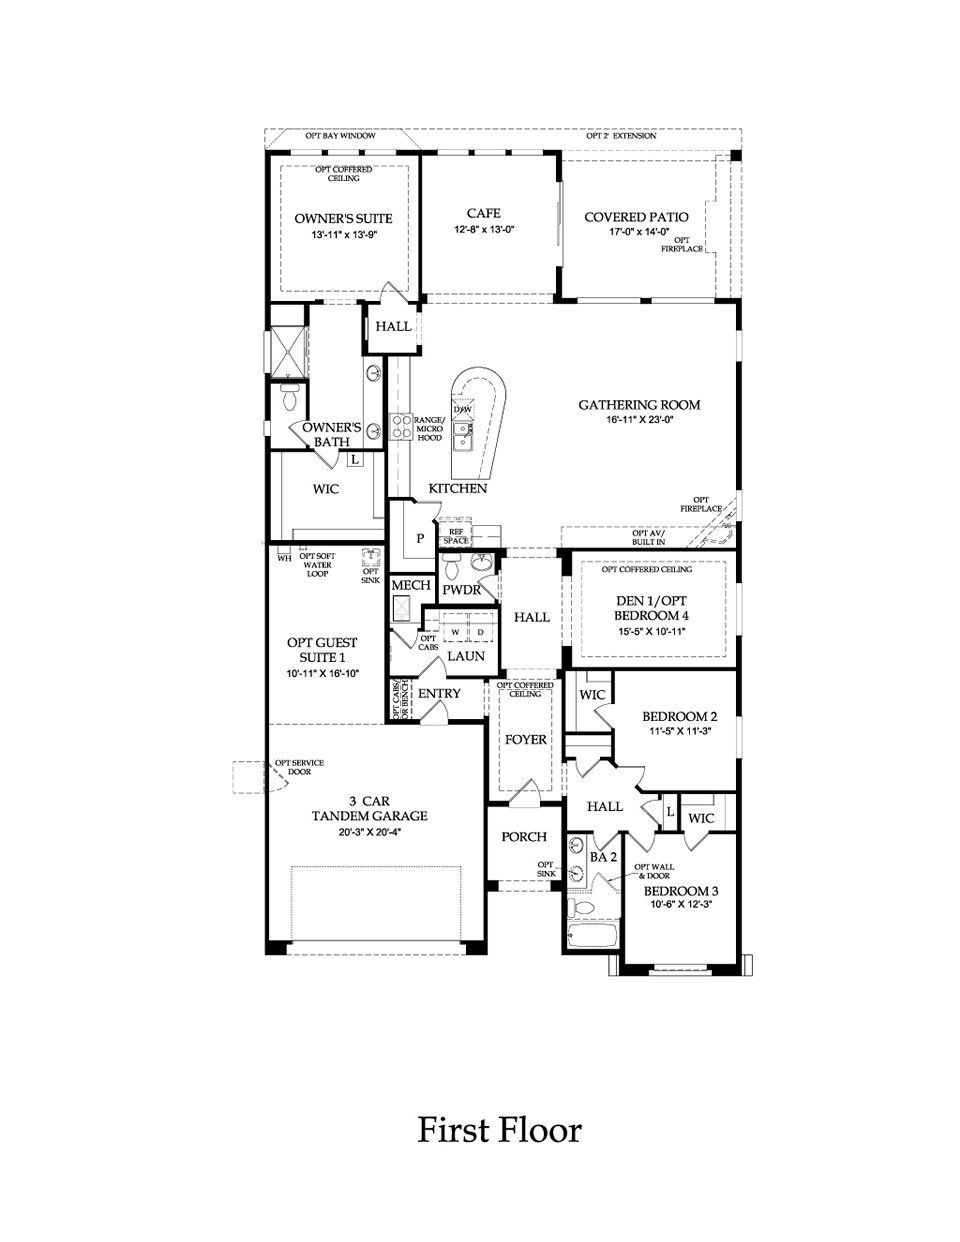 Pulte home parklane model 2449 sq ft lots of options for Model home floor plans